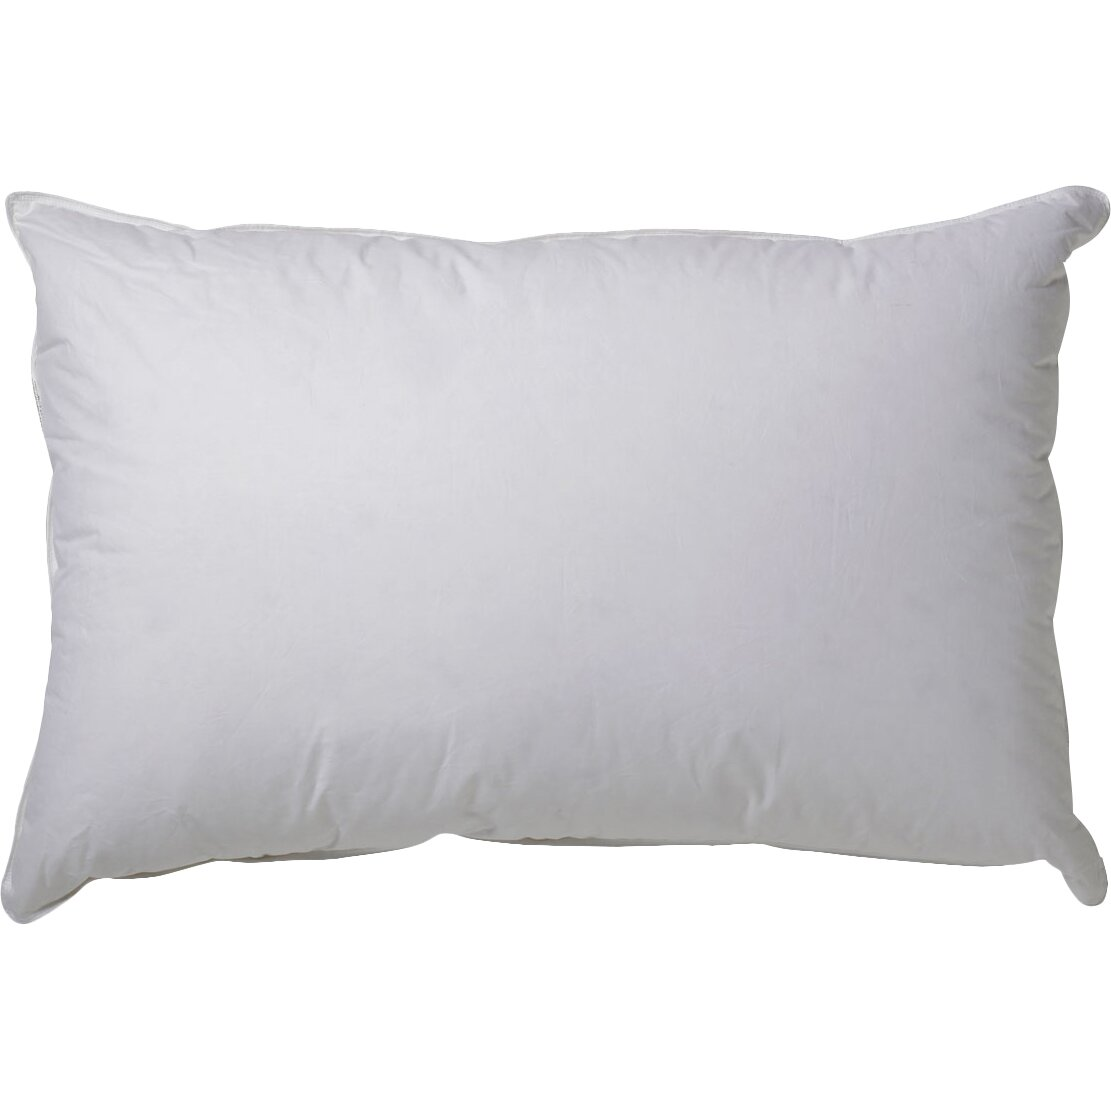 ELuxury Supply Extra Soft Down Pillow